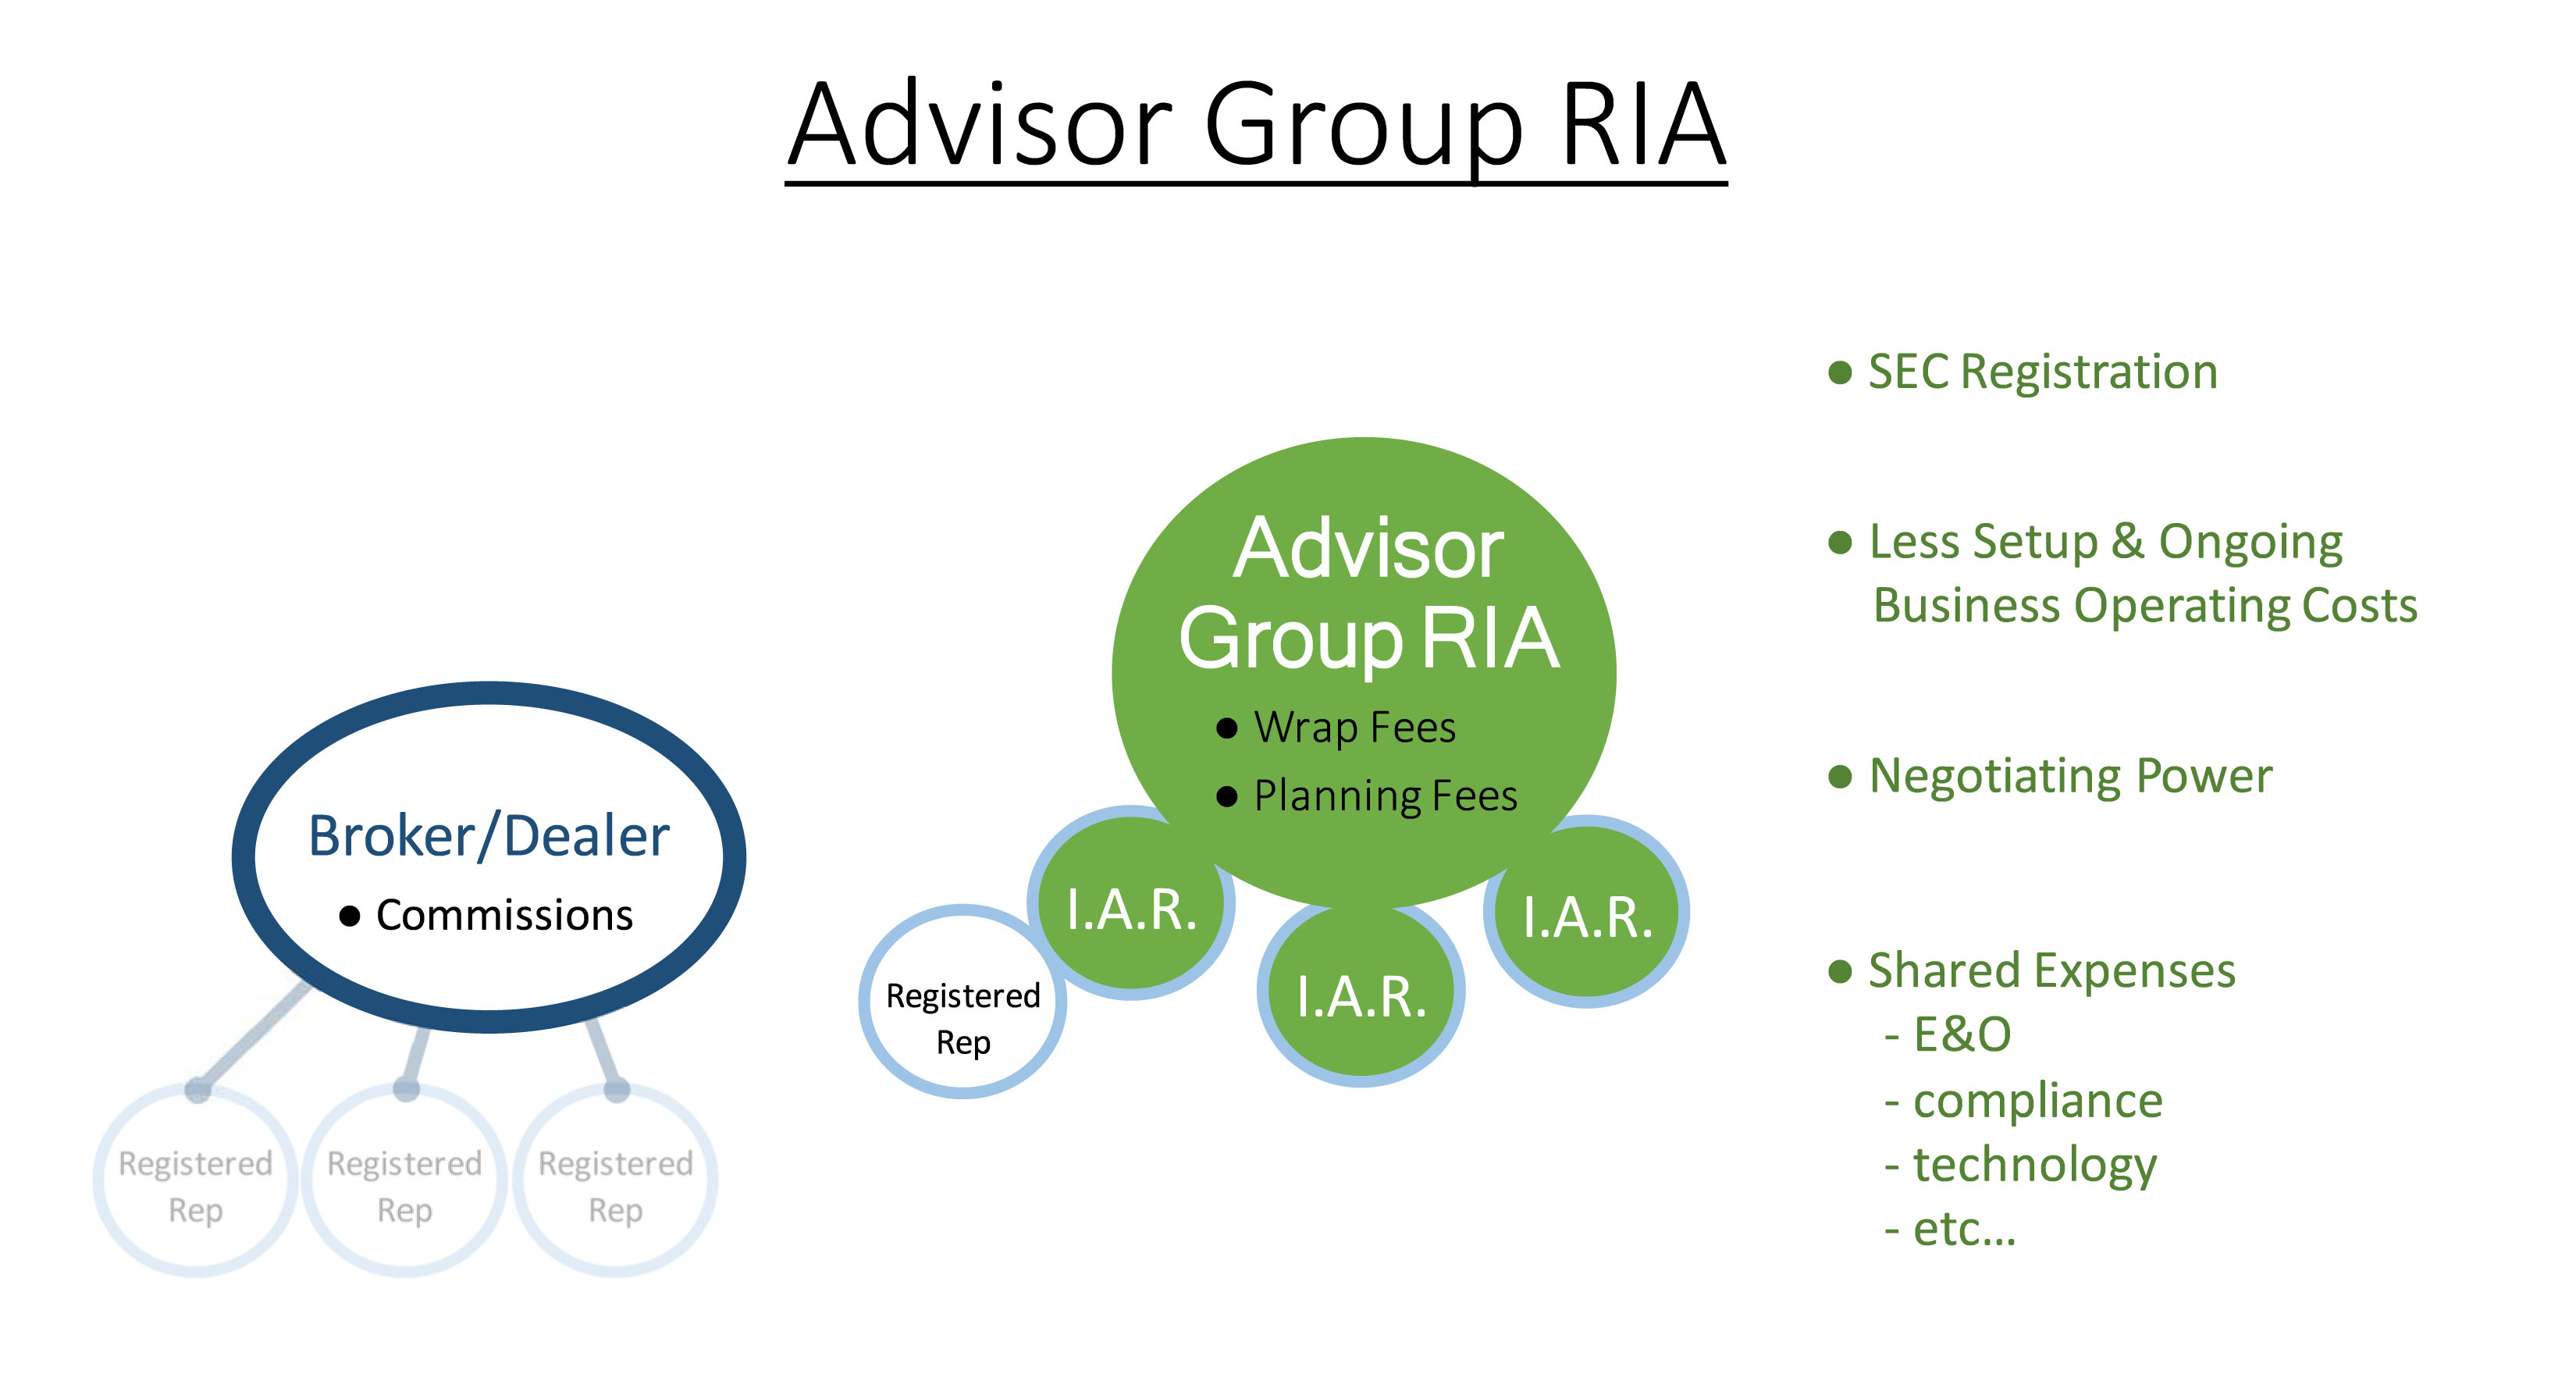 Advisor Group RIA